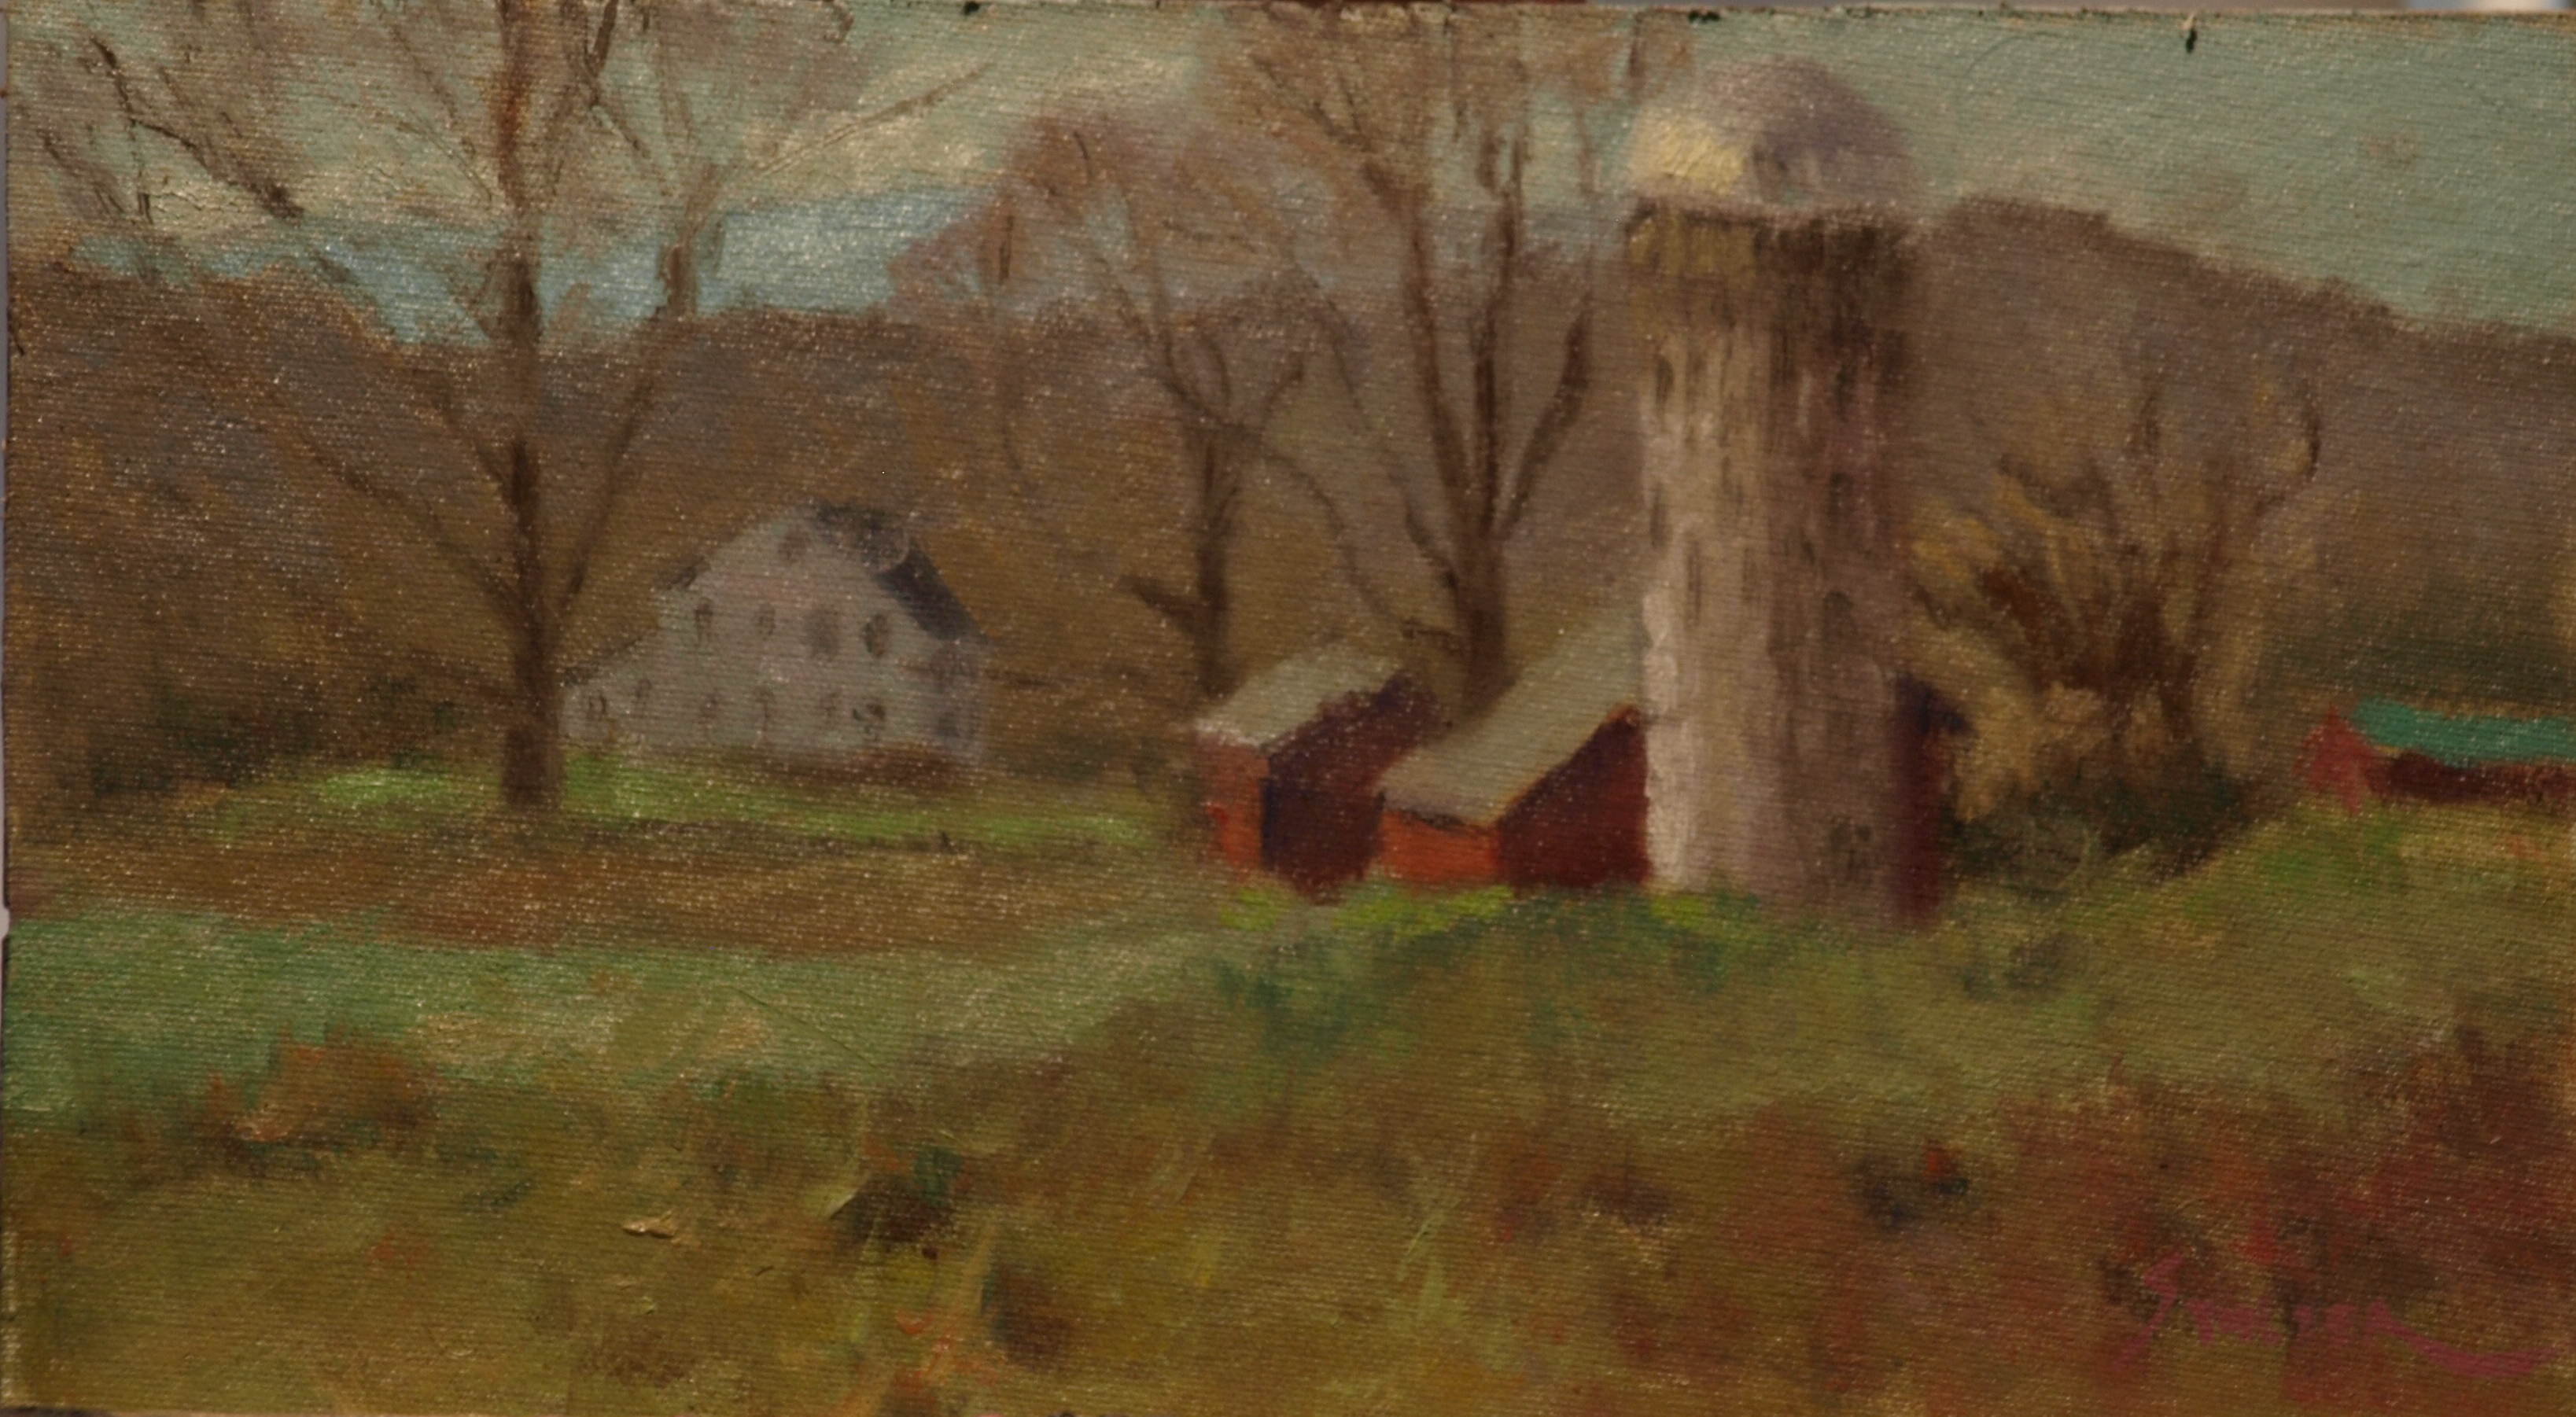 Lindburgh's Farm Buildings, Oil on Canvas on Panel, 8 x 14 Inches, by Richard Stalter, $225